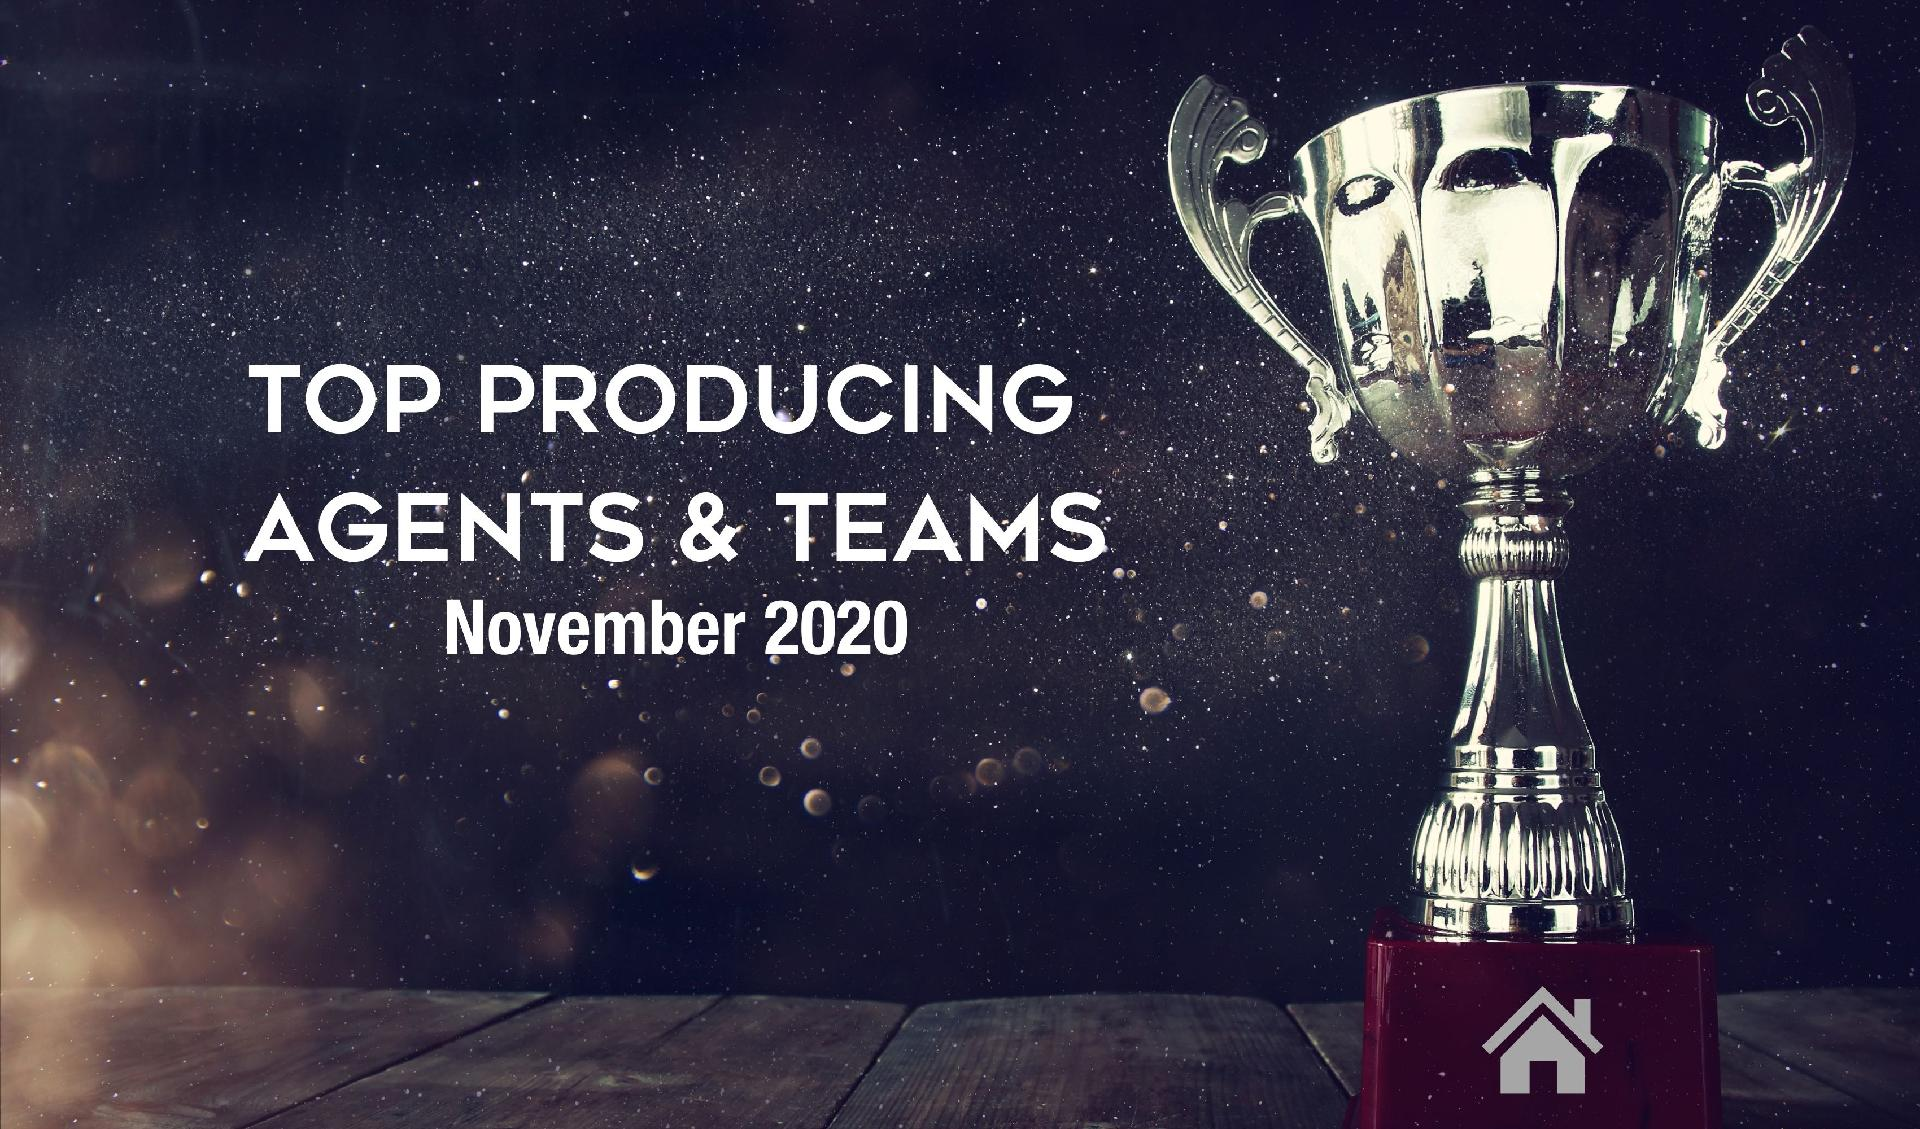 CONGRATULATIONS Top Agents & Teams! - November 2020 Main Photo